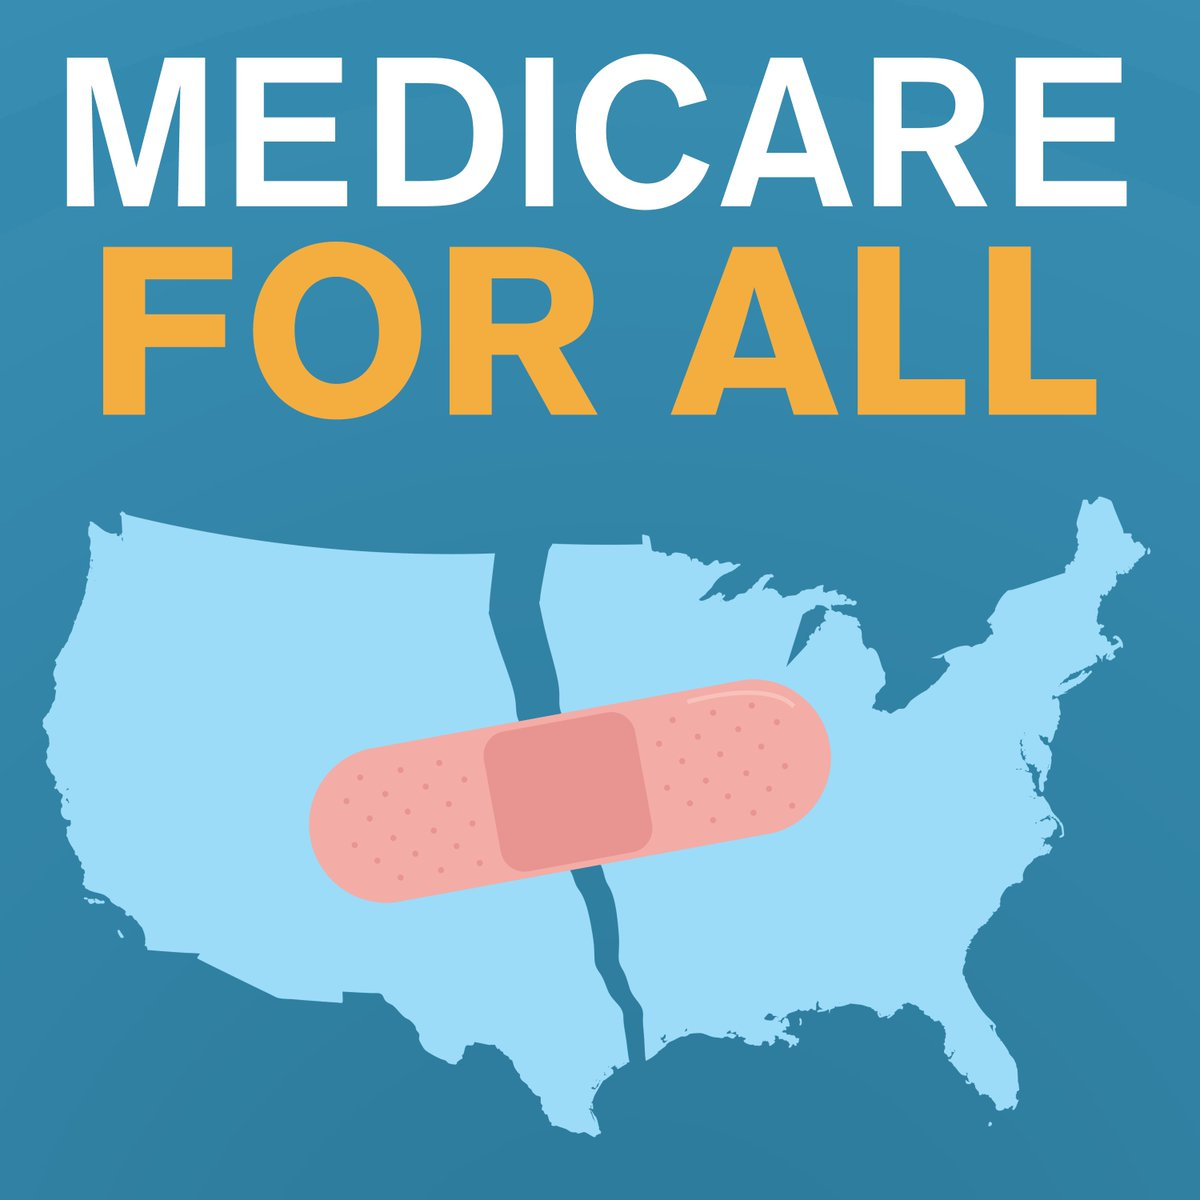 Why is this concept so difficult? We free Americans from worry, financial hardship, and unnecessary deaths.  @K810Mt  @myhaze  @ireneberns  @texanforbernie  @AlanWilsonWatts https://t.co/Y84vQYXC7h